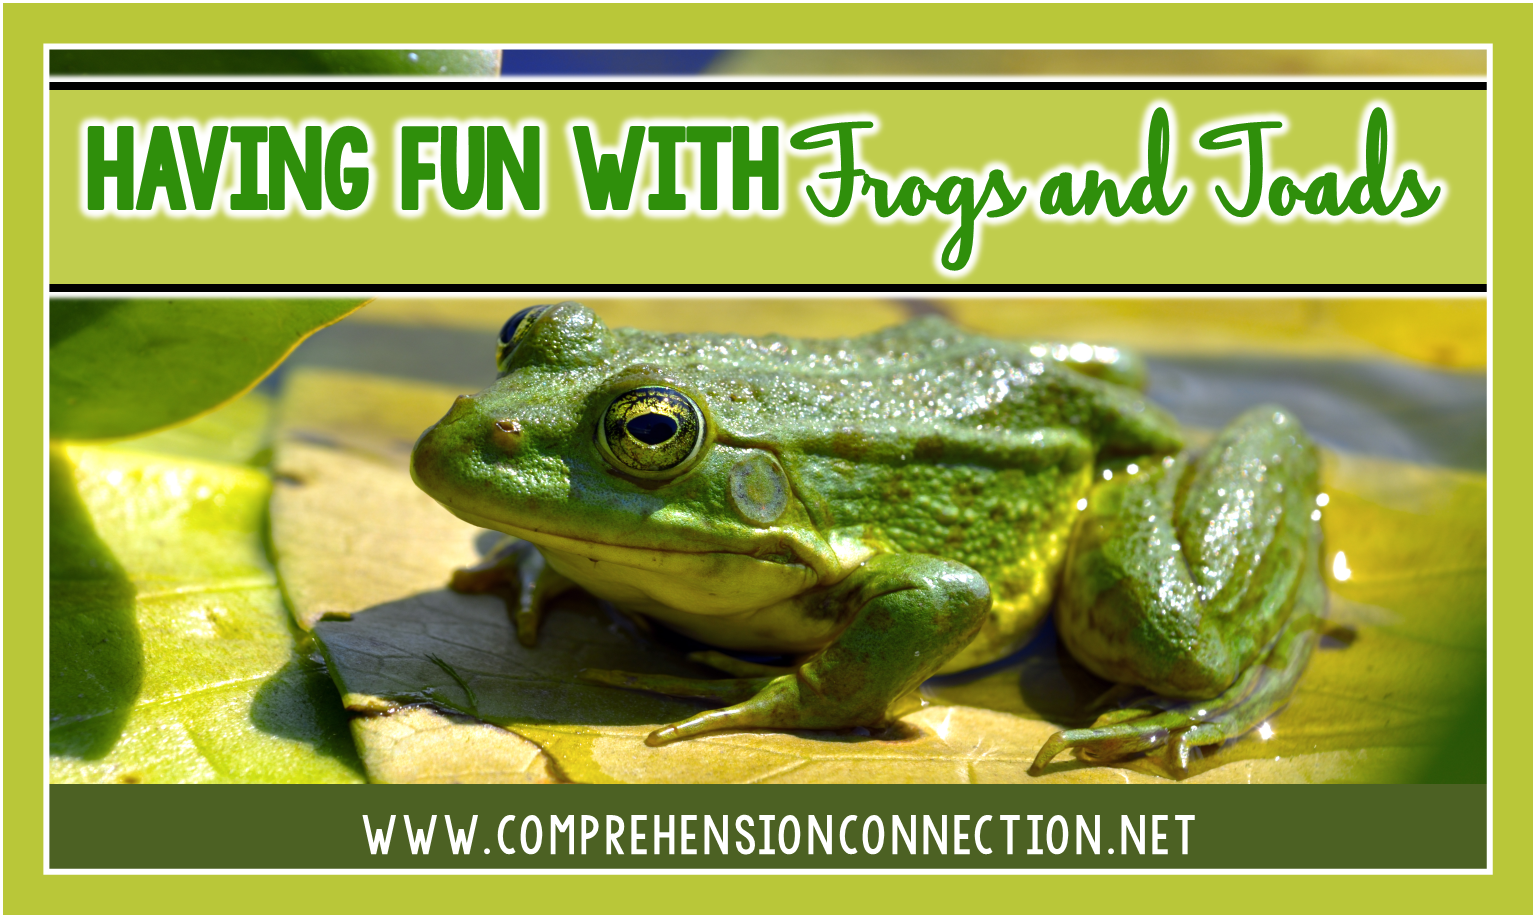 Kids are really drawn to icky things, aren't they? Well, why not use the ick factor to your advantage with a frog and toad themed week?  This post will get your planning started.